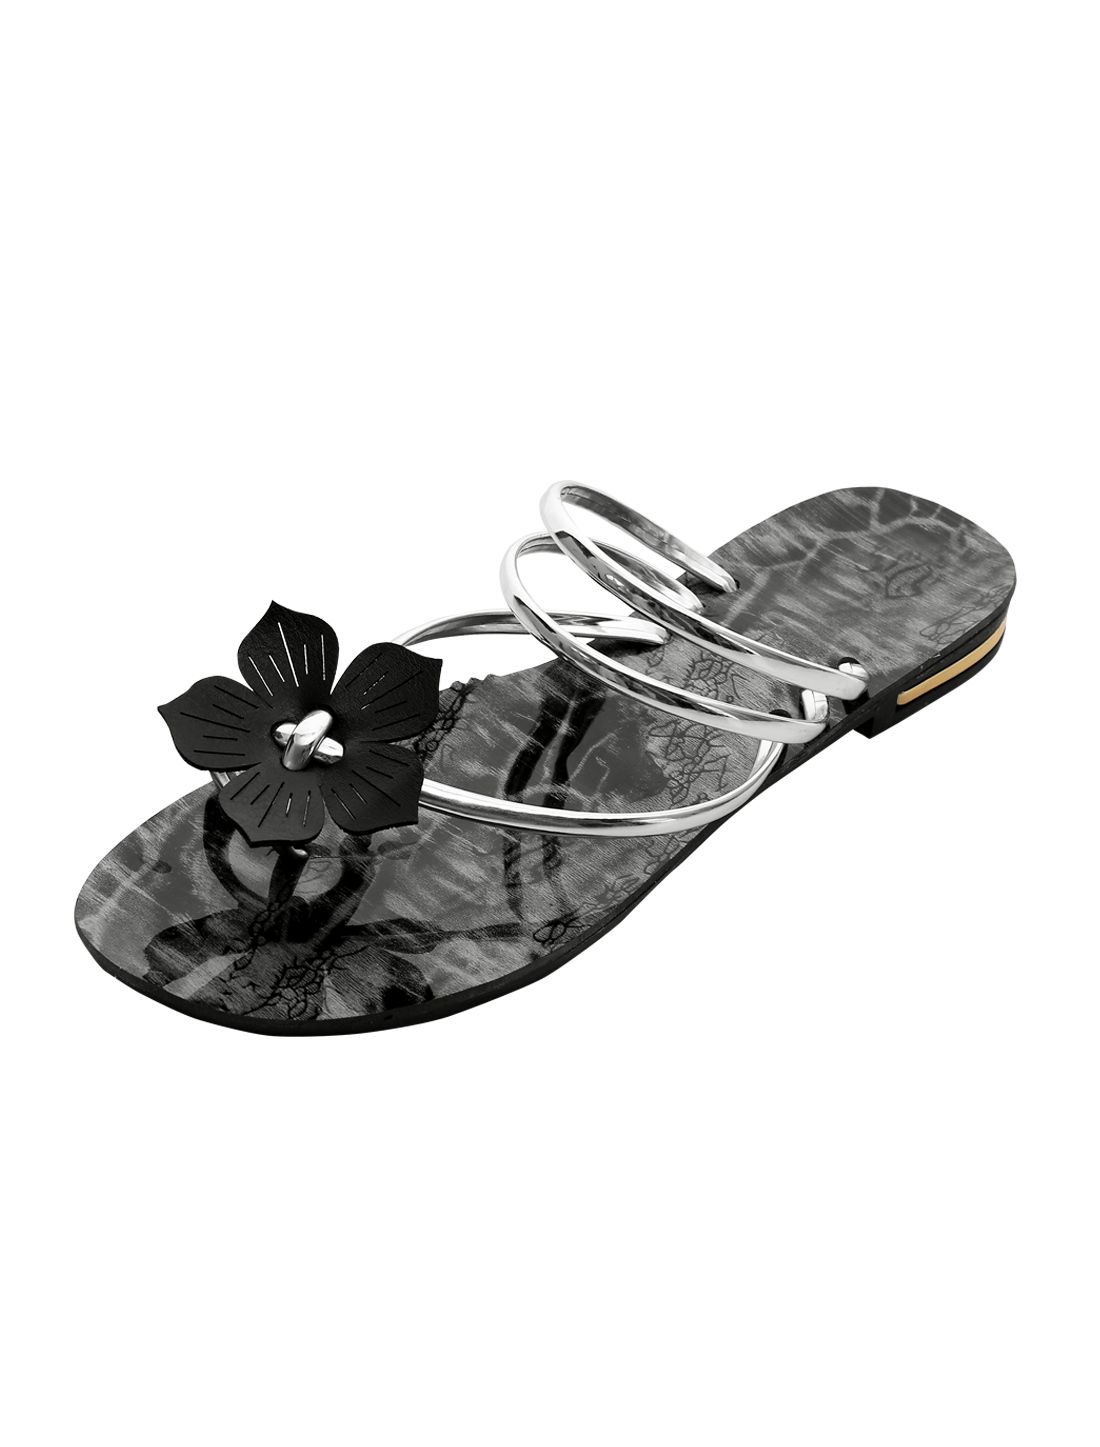 Lady Floral Decor Printed Strappy Slip on Sandals Silver Tone US 6.5